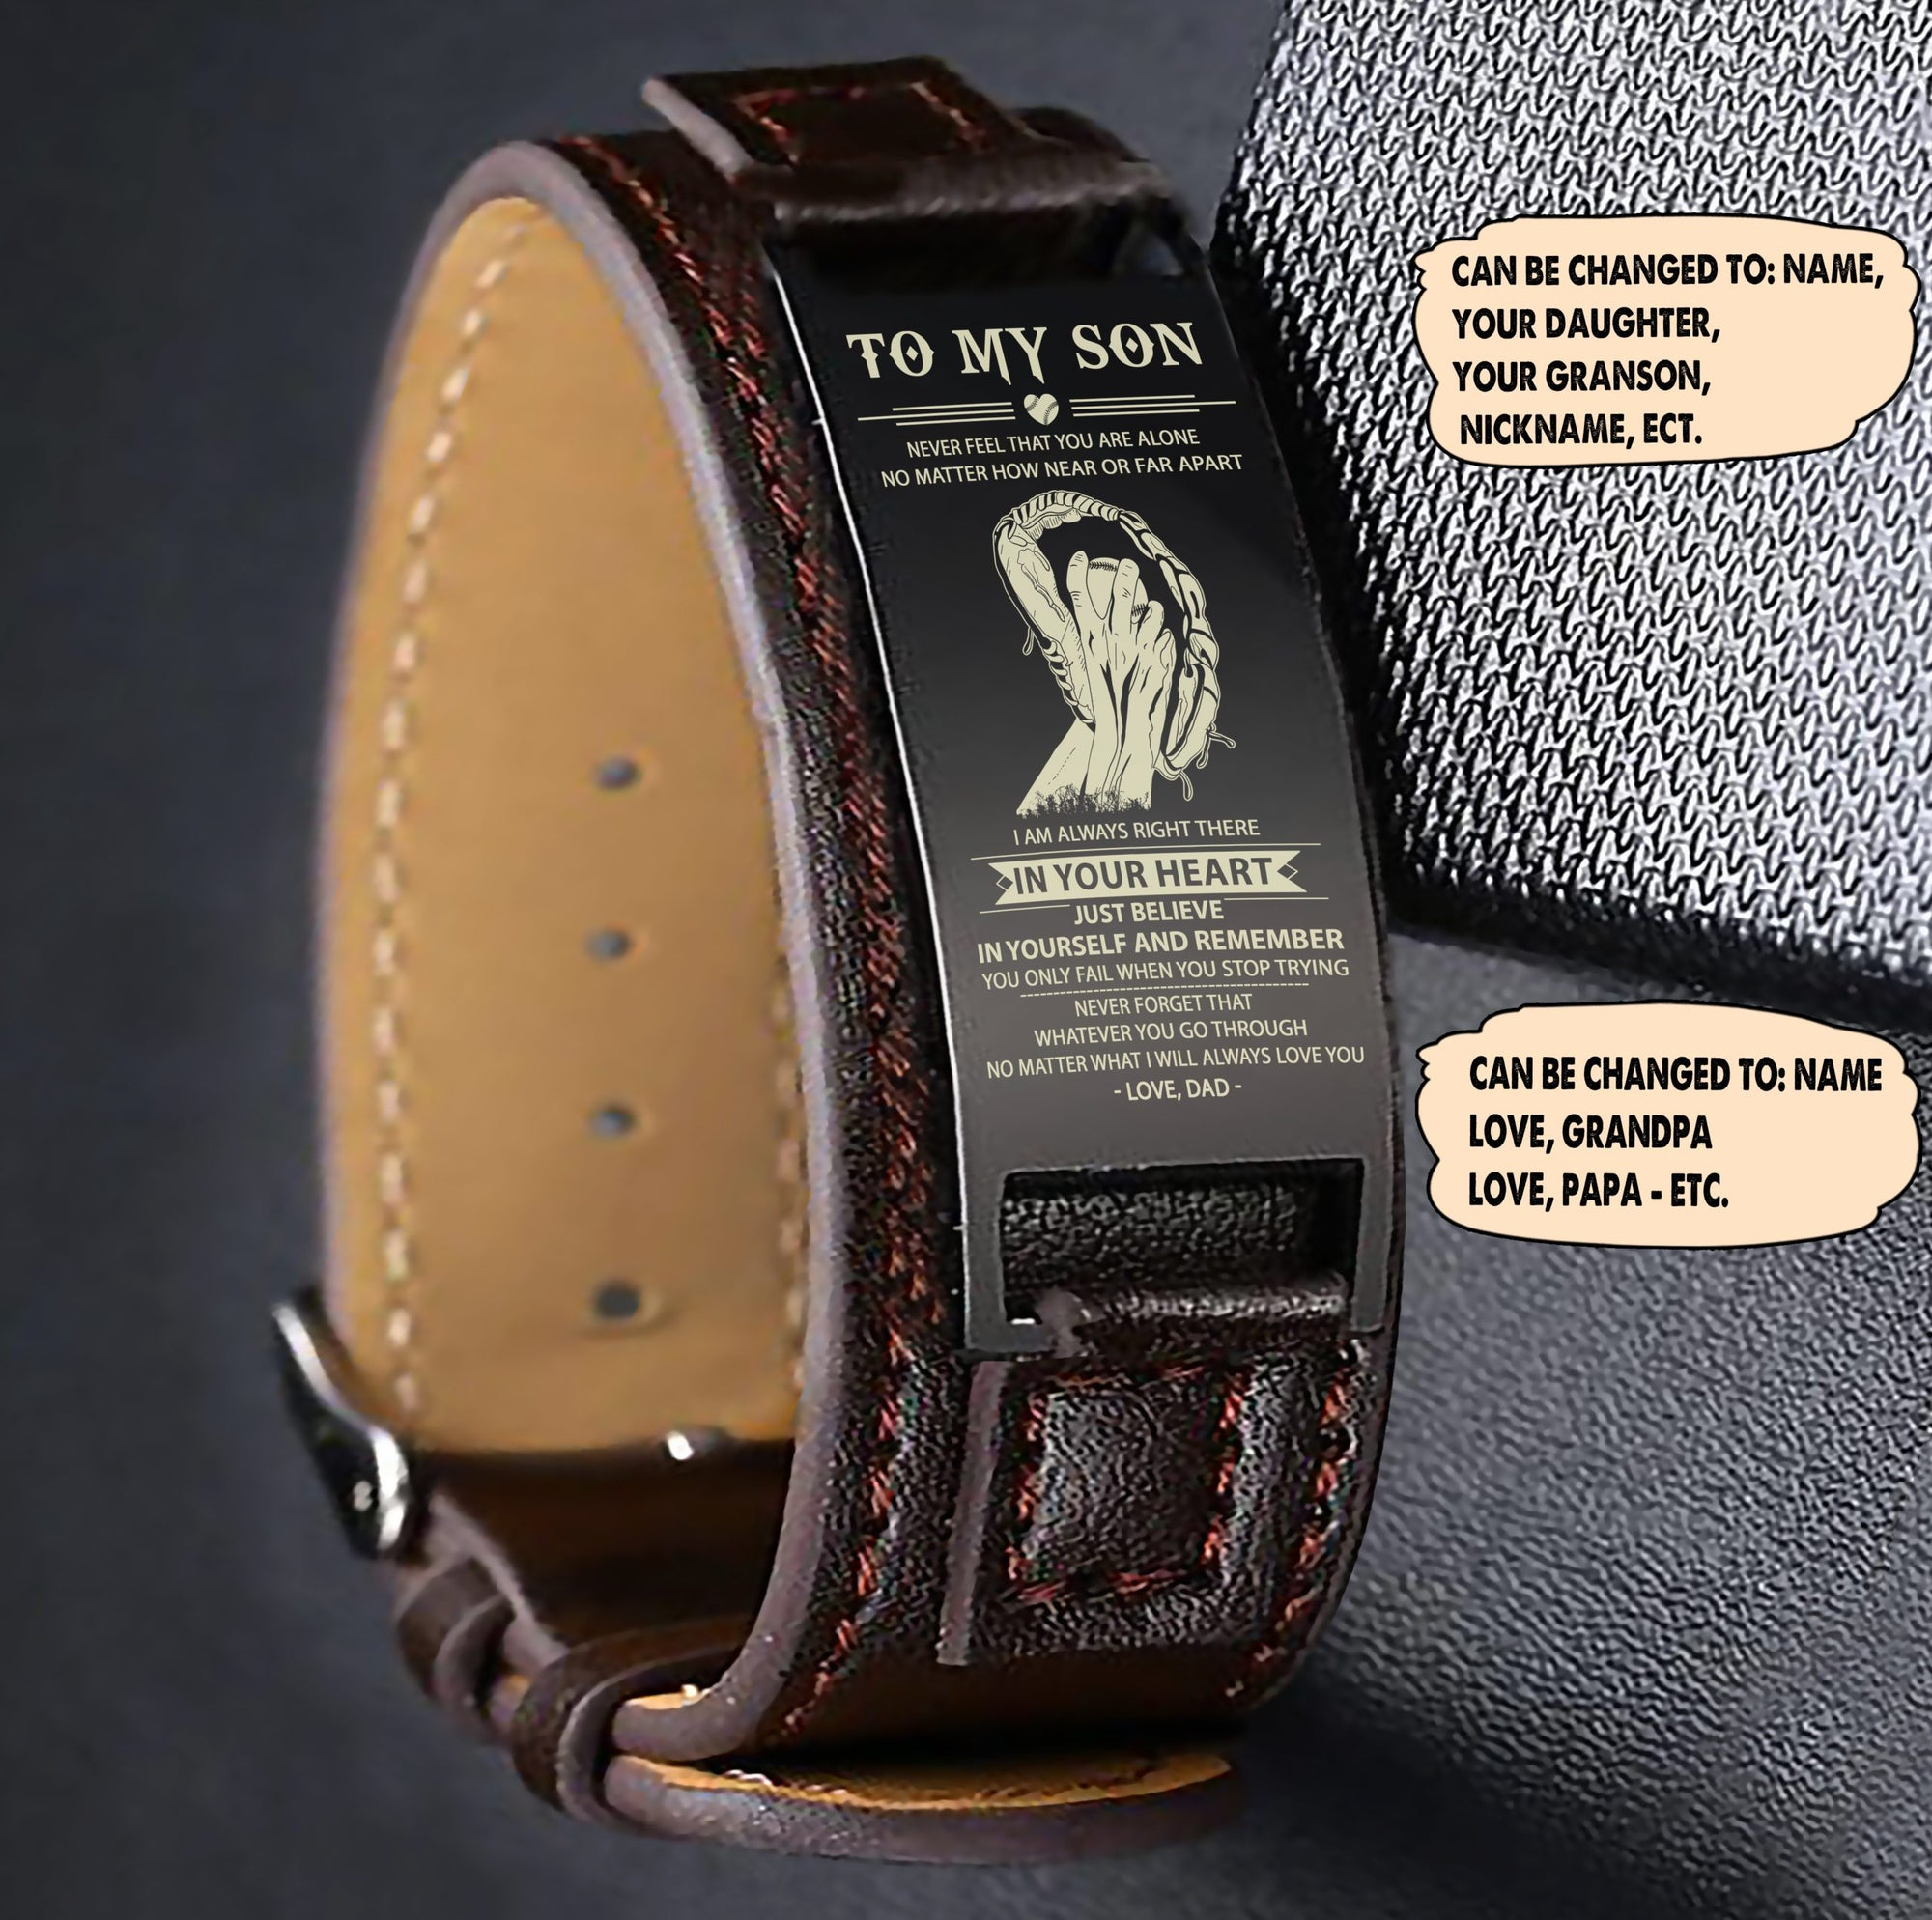 (LP128) Baseball Brown Engraved Leather Steel Bracelets- Dad to son- In your heart. FREE SHIPPING FROM 2 ITEMS